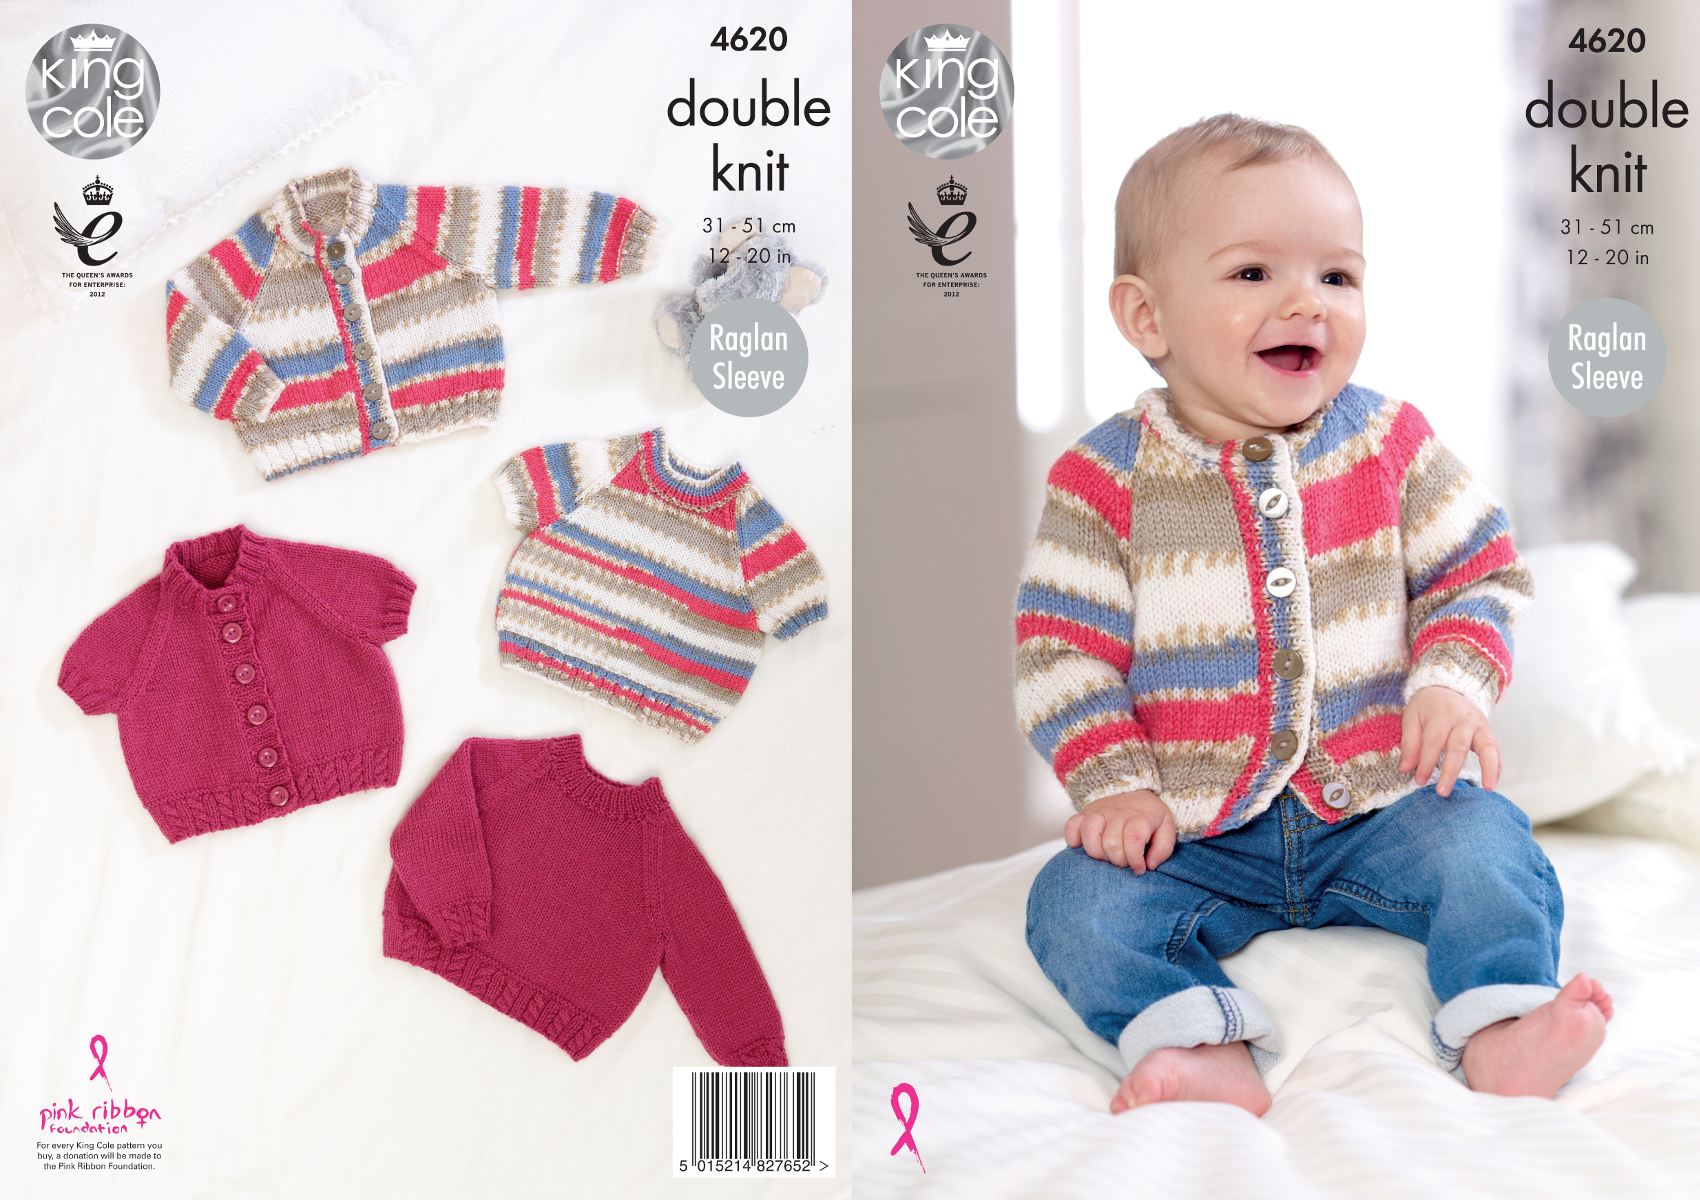 King cole baby double knitting pattern raglan sleeve sweaters or please look at images below for the chart showing measurements yarn and materials requirement to make this garment bankloansurffo Choice Image